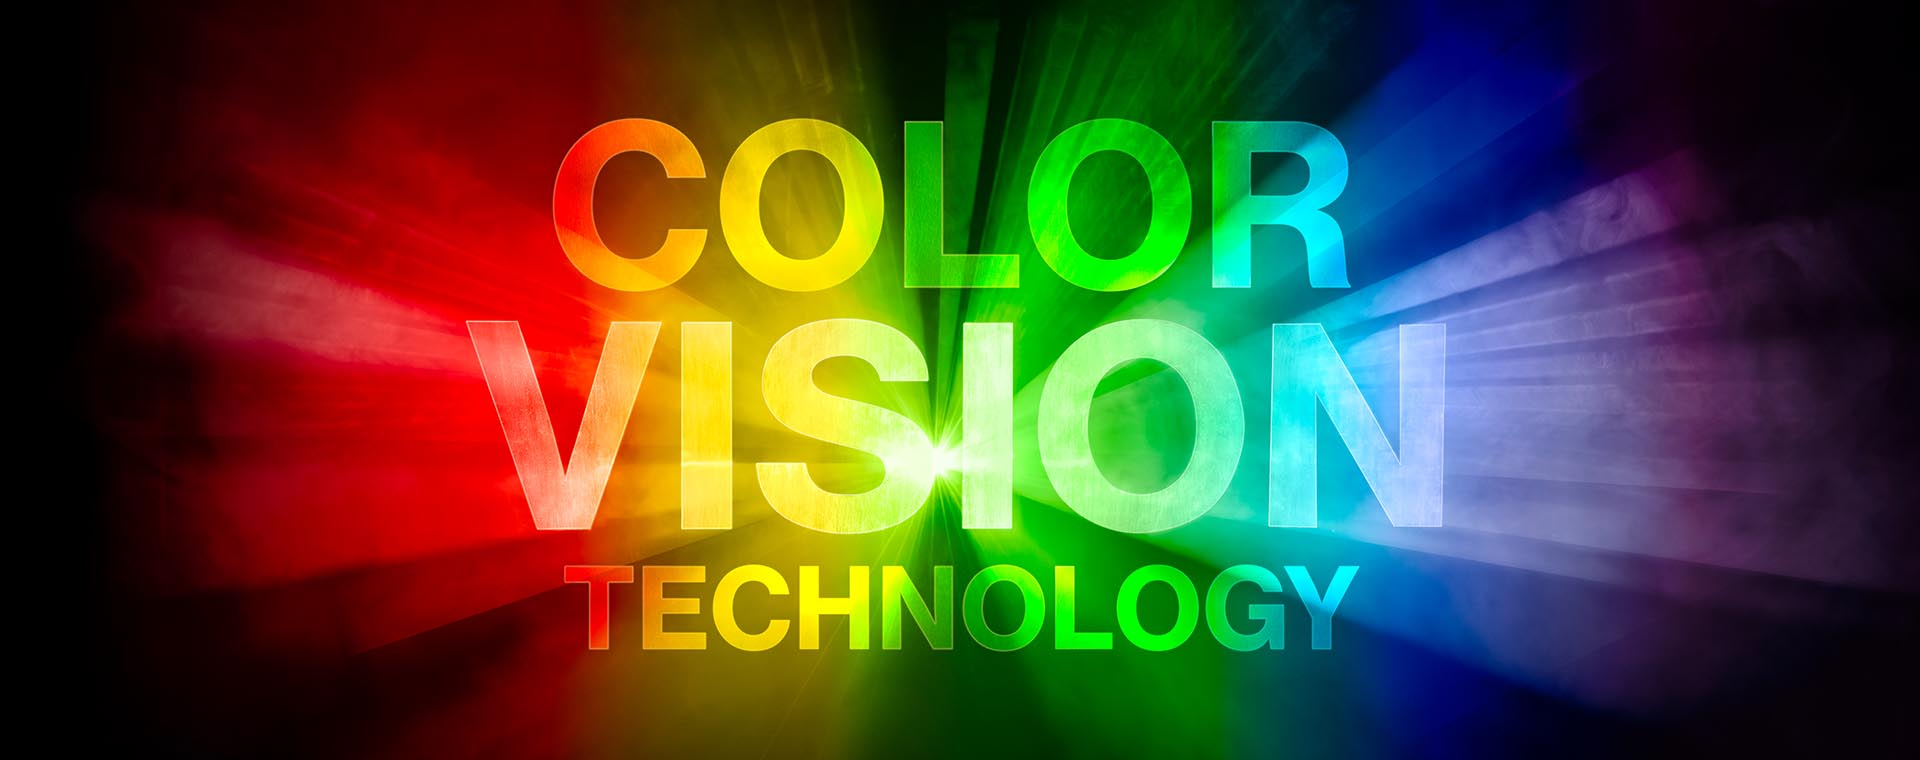 Colorvision Technology